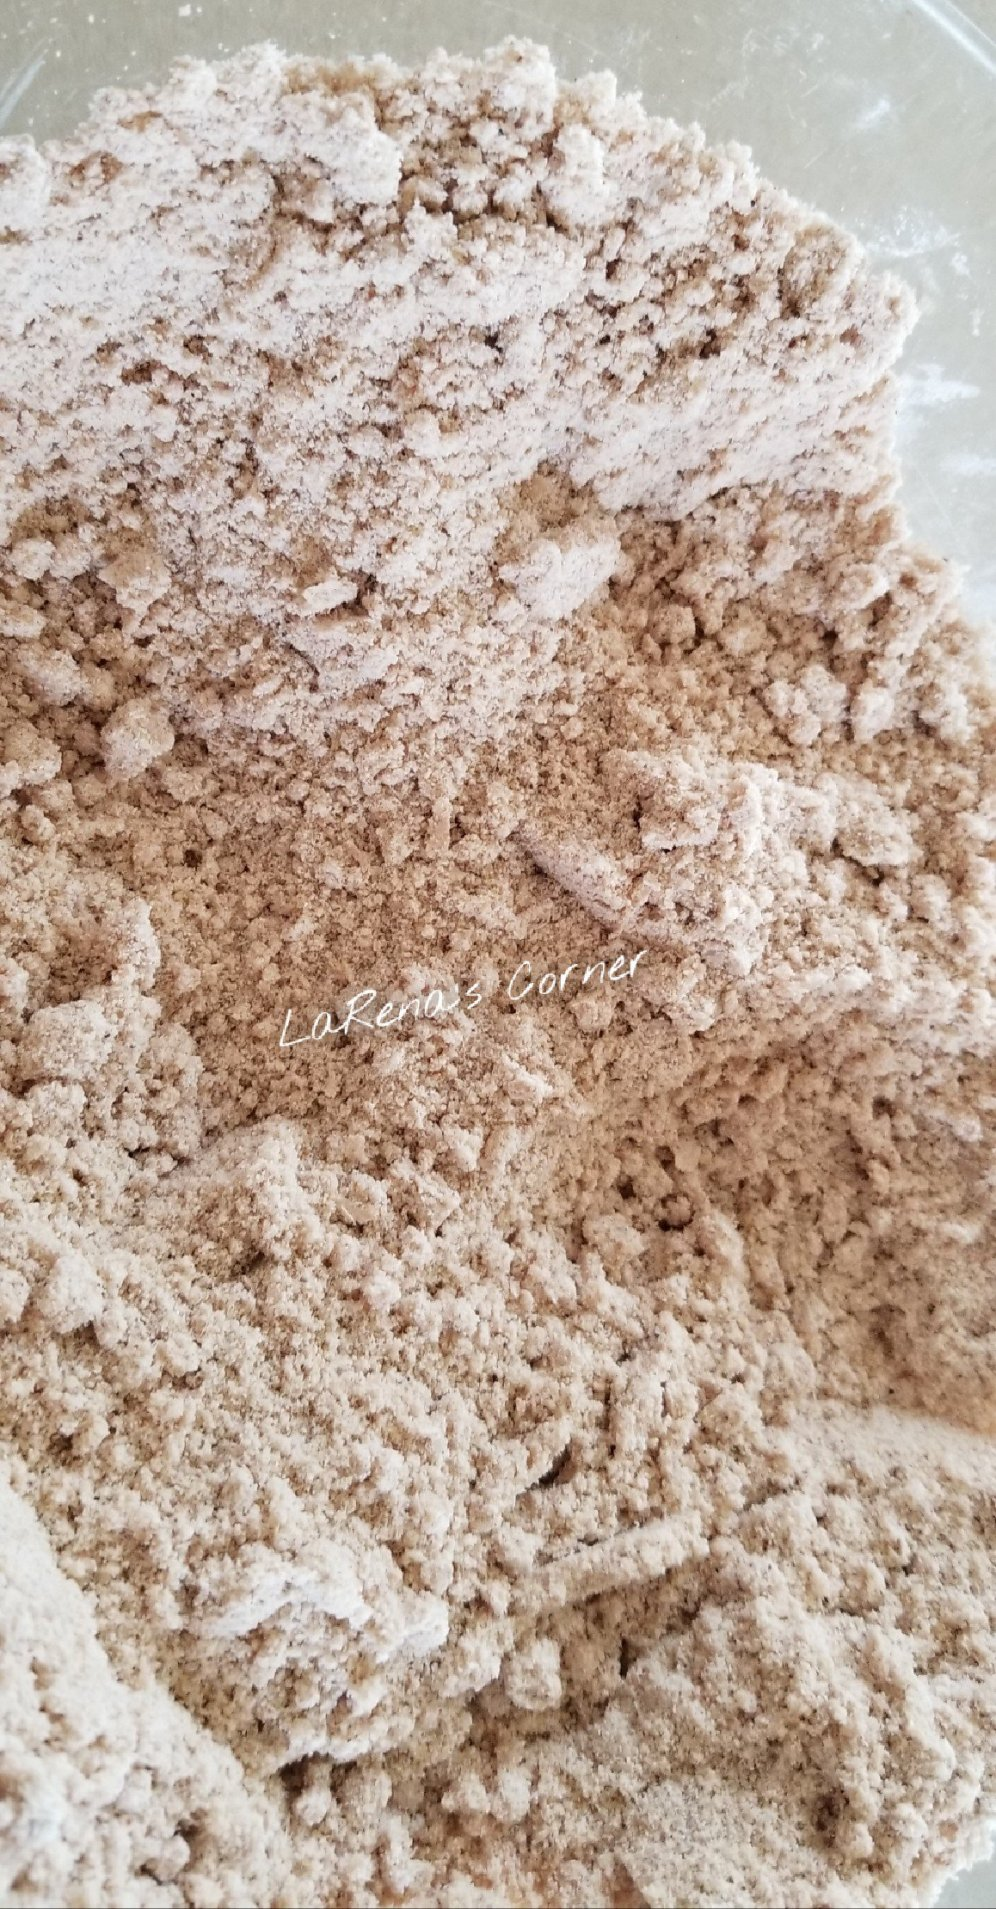 Cassava flour with coconut oil. See the coarse crumbles.